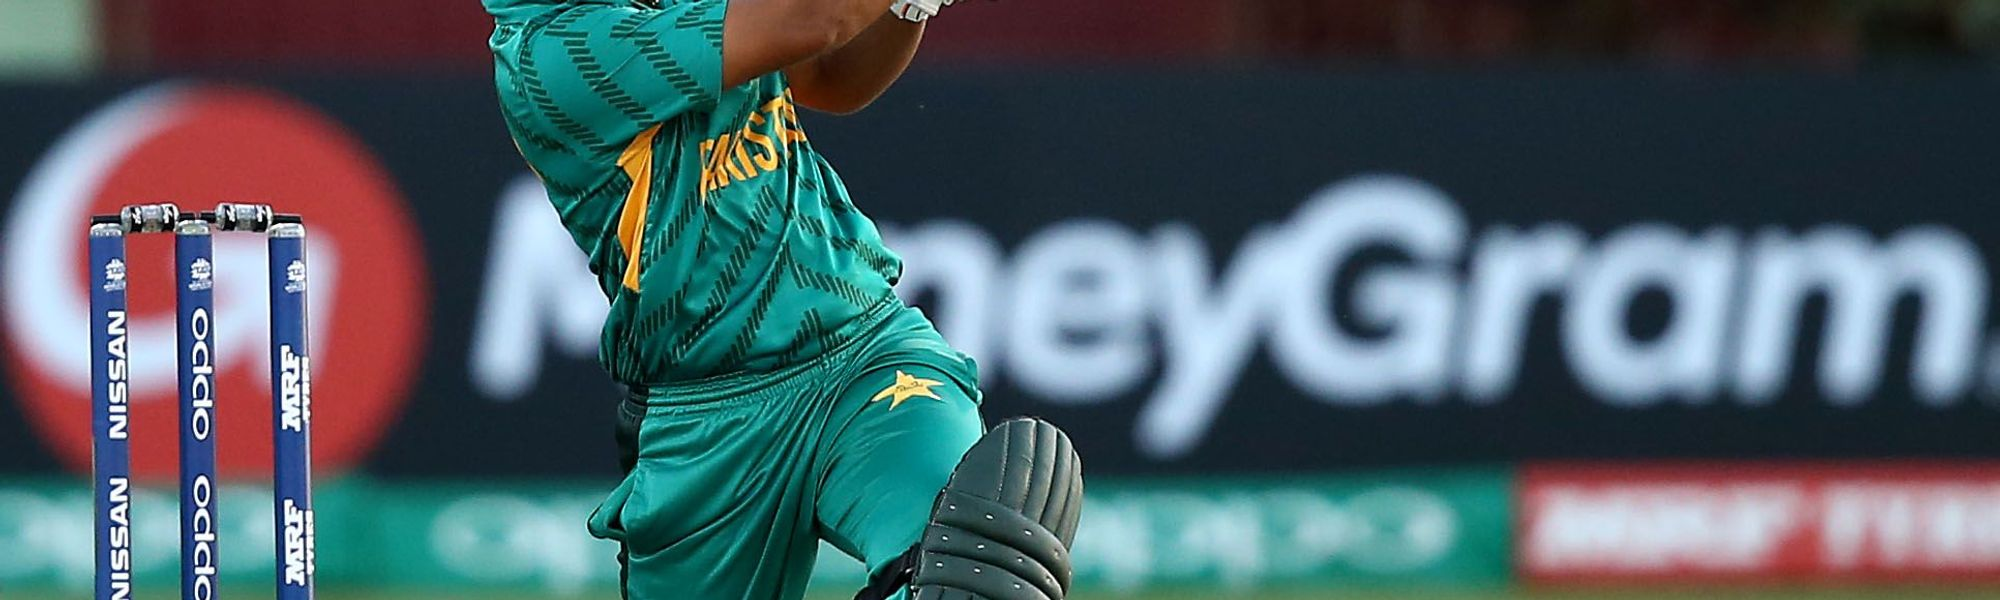 Nida Dar notched up a 37-ball 75